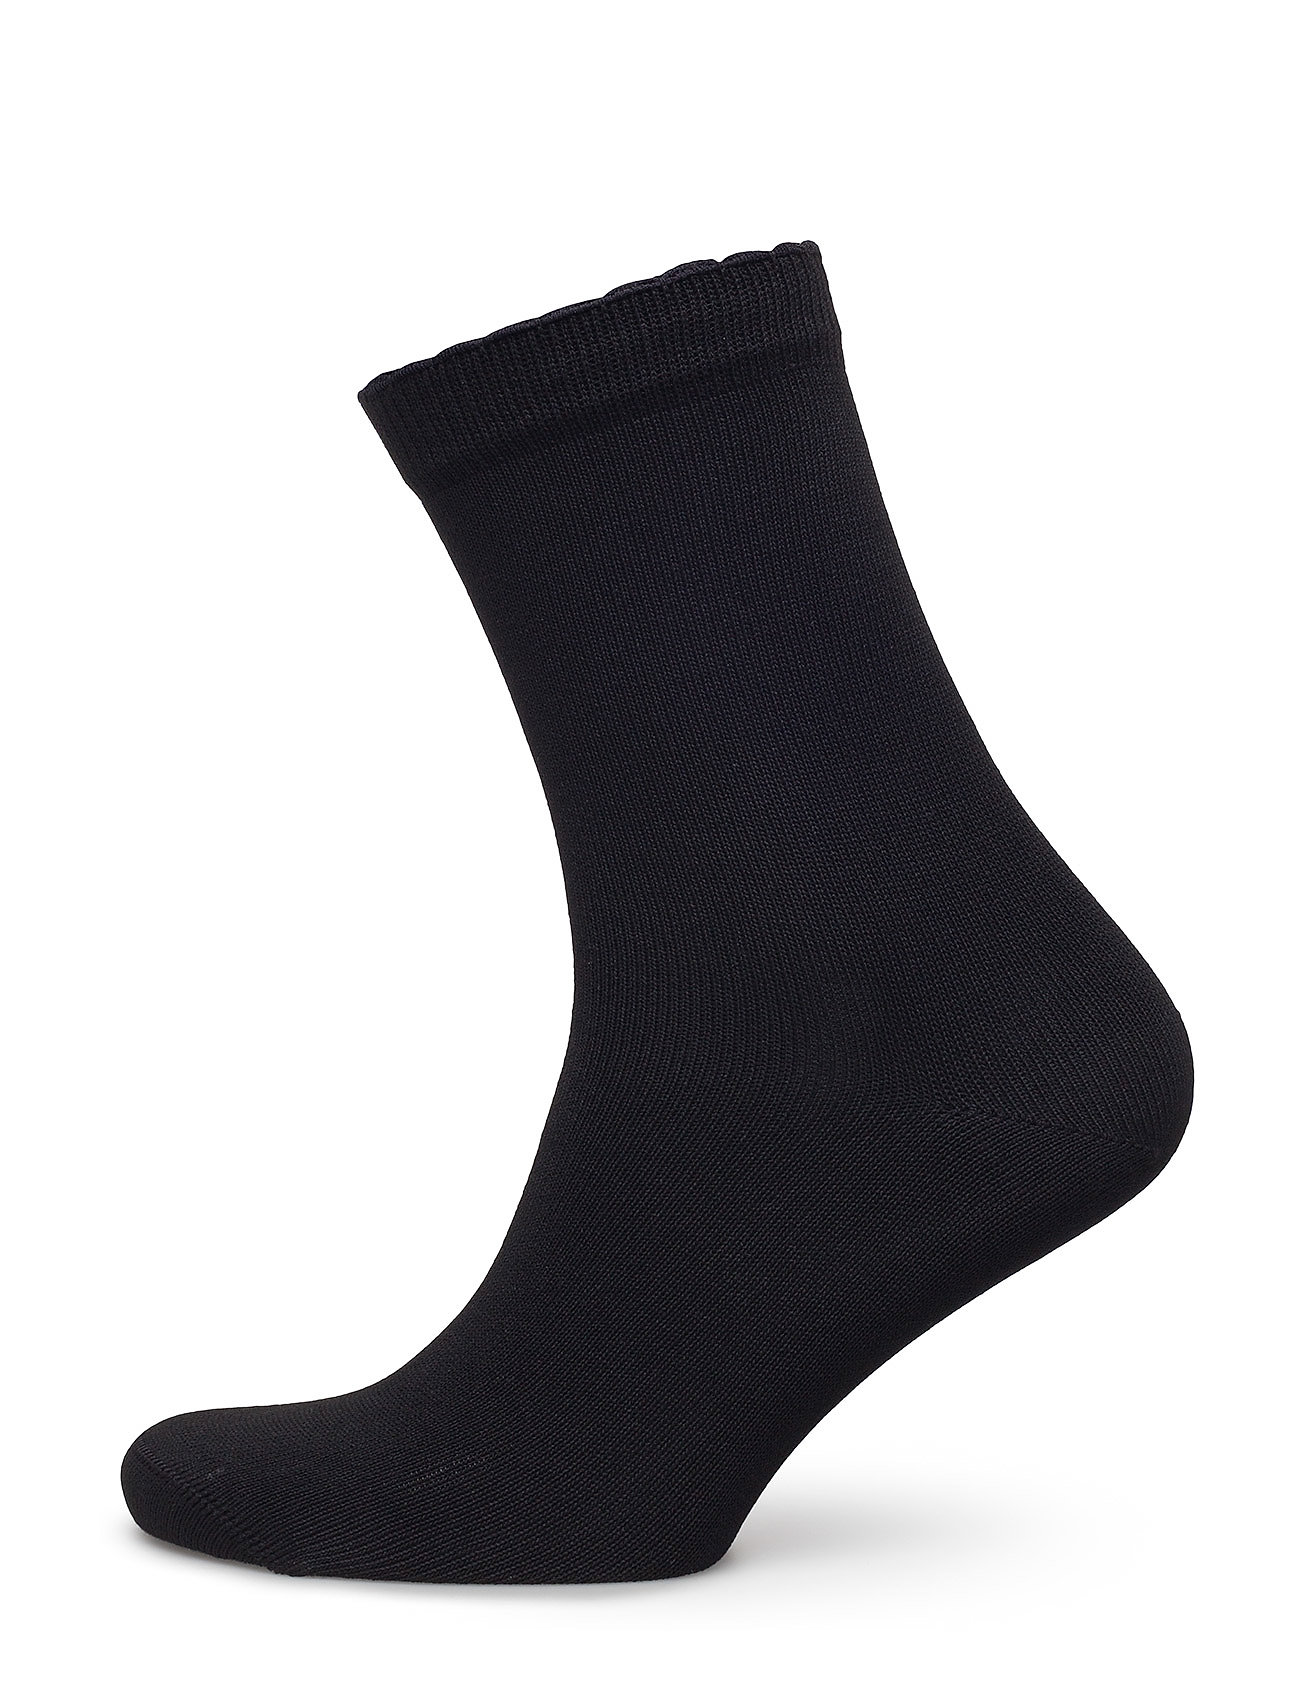 Vogue Ladies anklesock, Bamboo Socks - BLACK